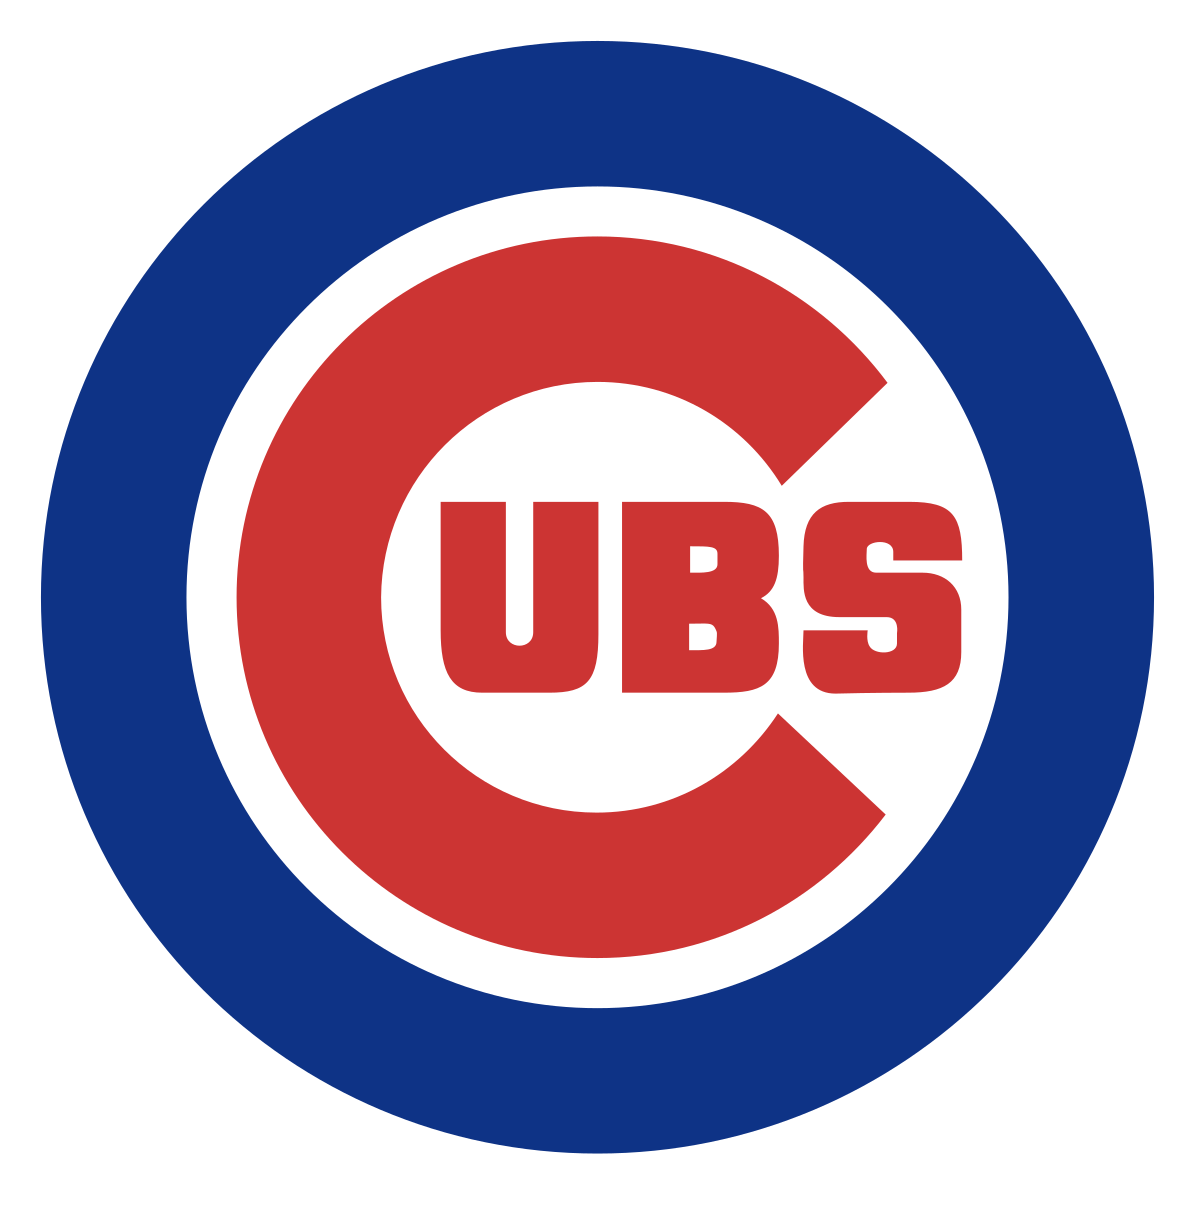 Chicago cubs c logo png. Wikipedia